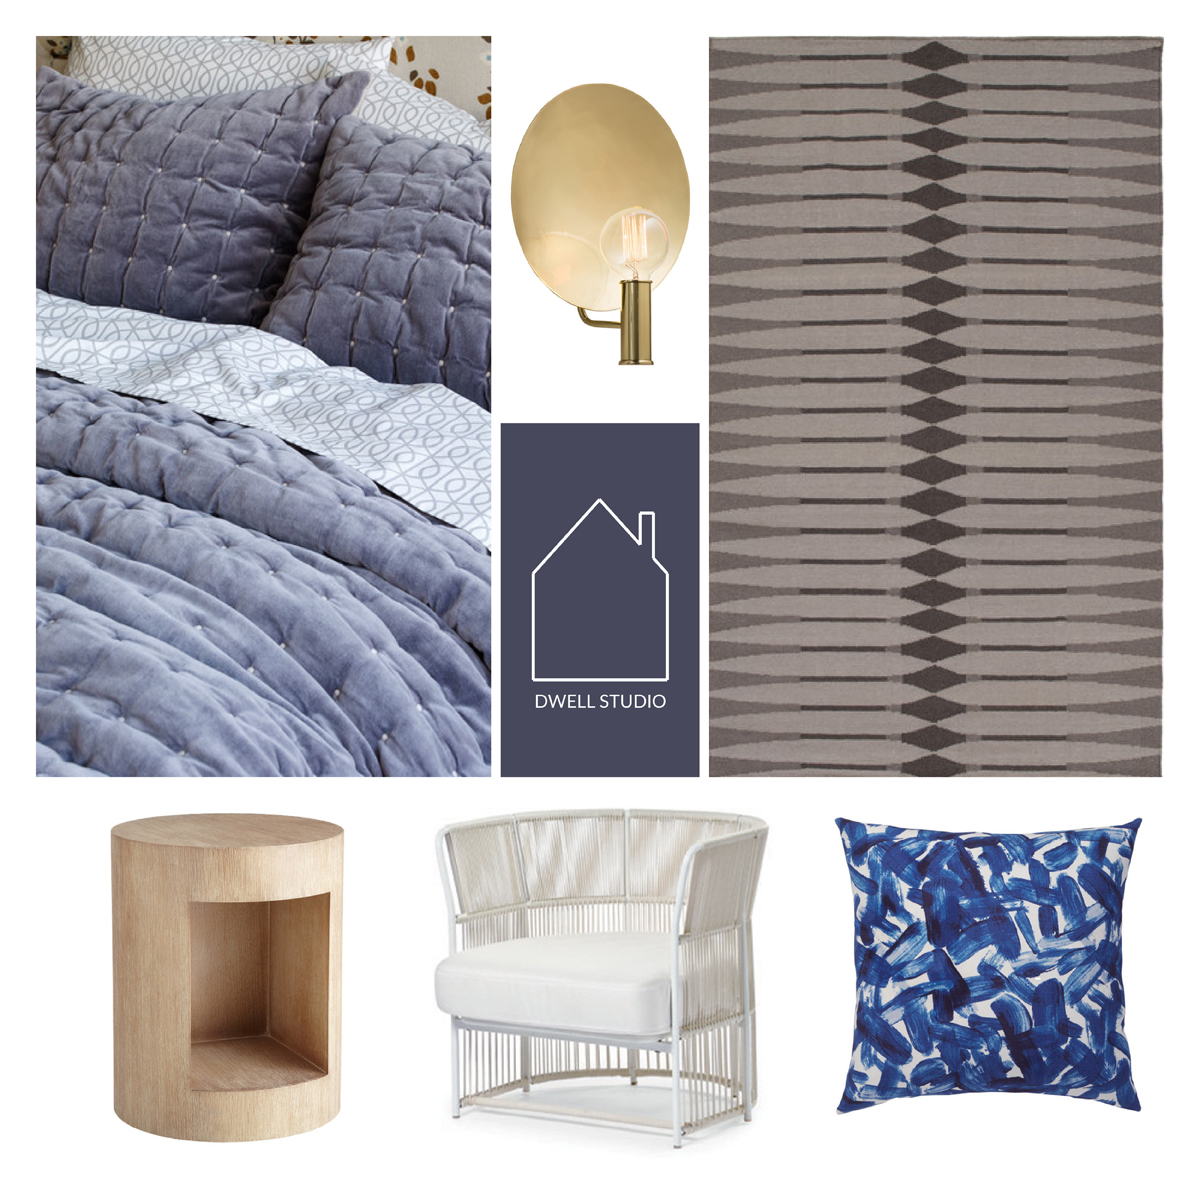 from top left -  mercer smoke quilt  -  conall sconce  - anders smoke flatweave area rug  -  suno side table  -  trinidad arm chair  -  brushstroke indigo pillow